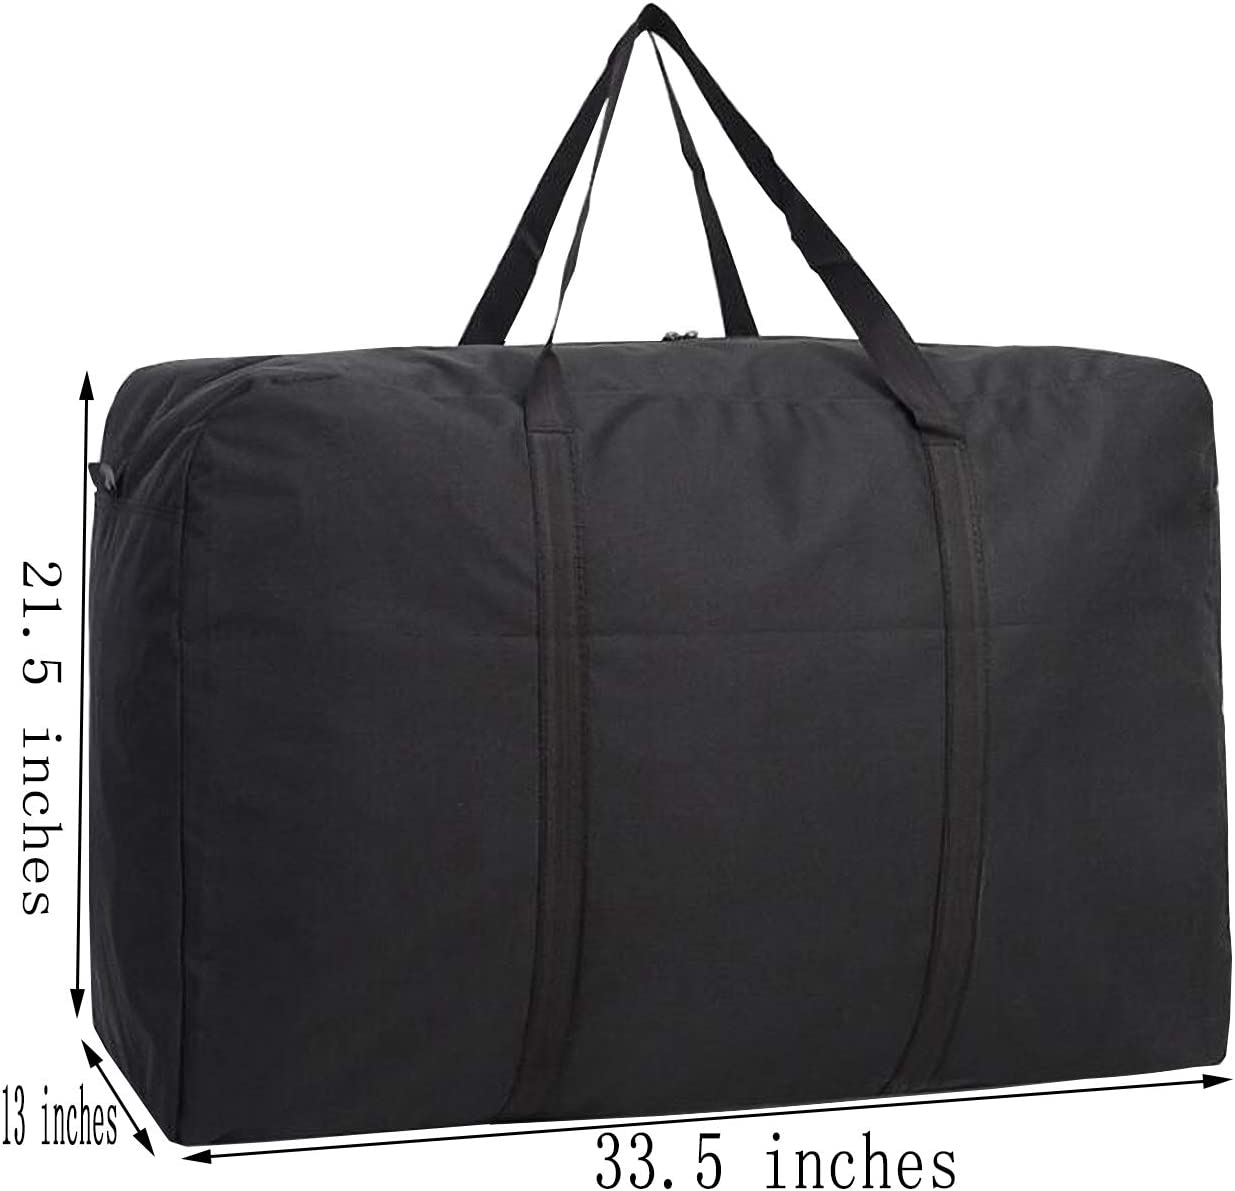 Outdoor 40L 600D Waterproof Oxford Cloth Sports Travelling Hiking Bag Black W3I7